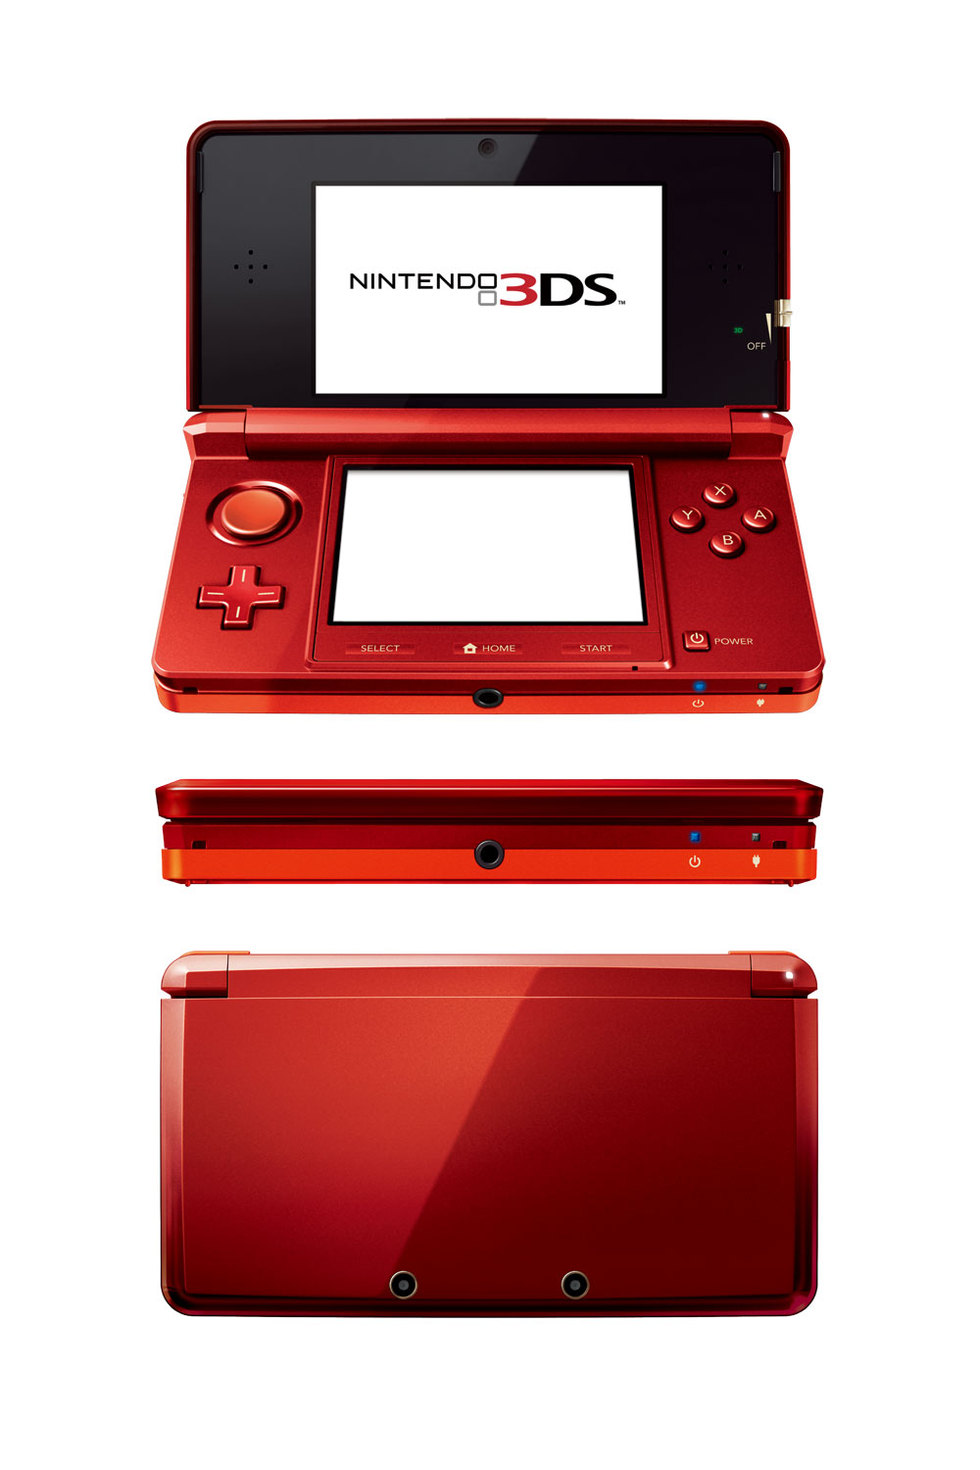 Nintendo 3DS en color rojo